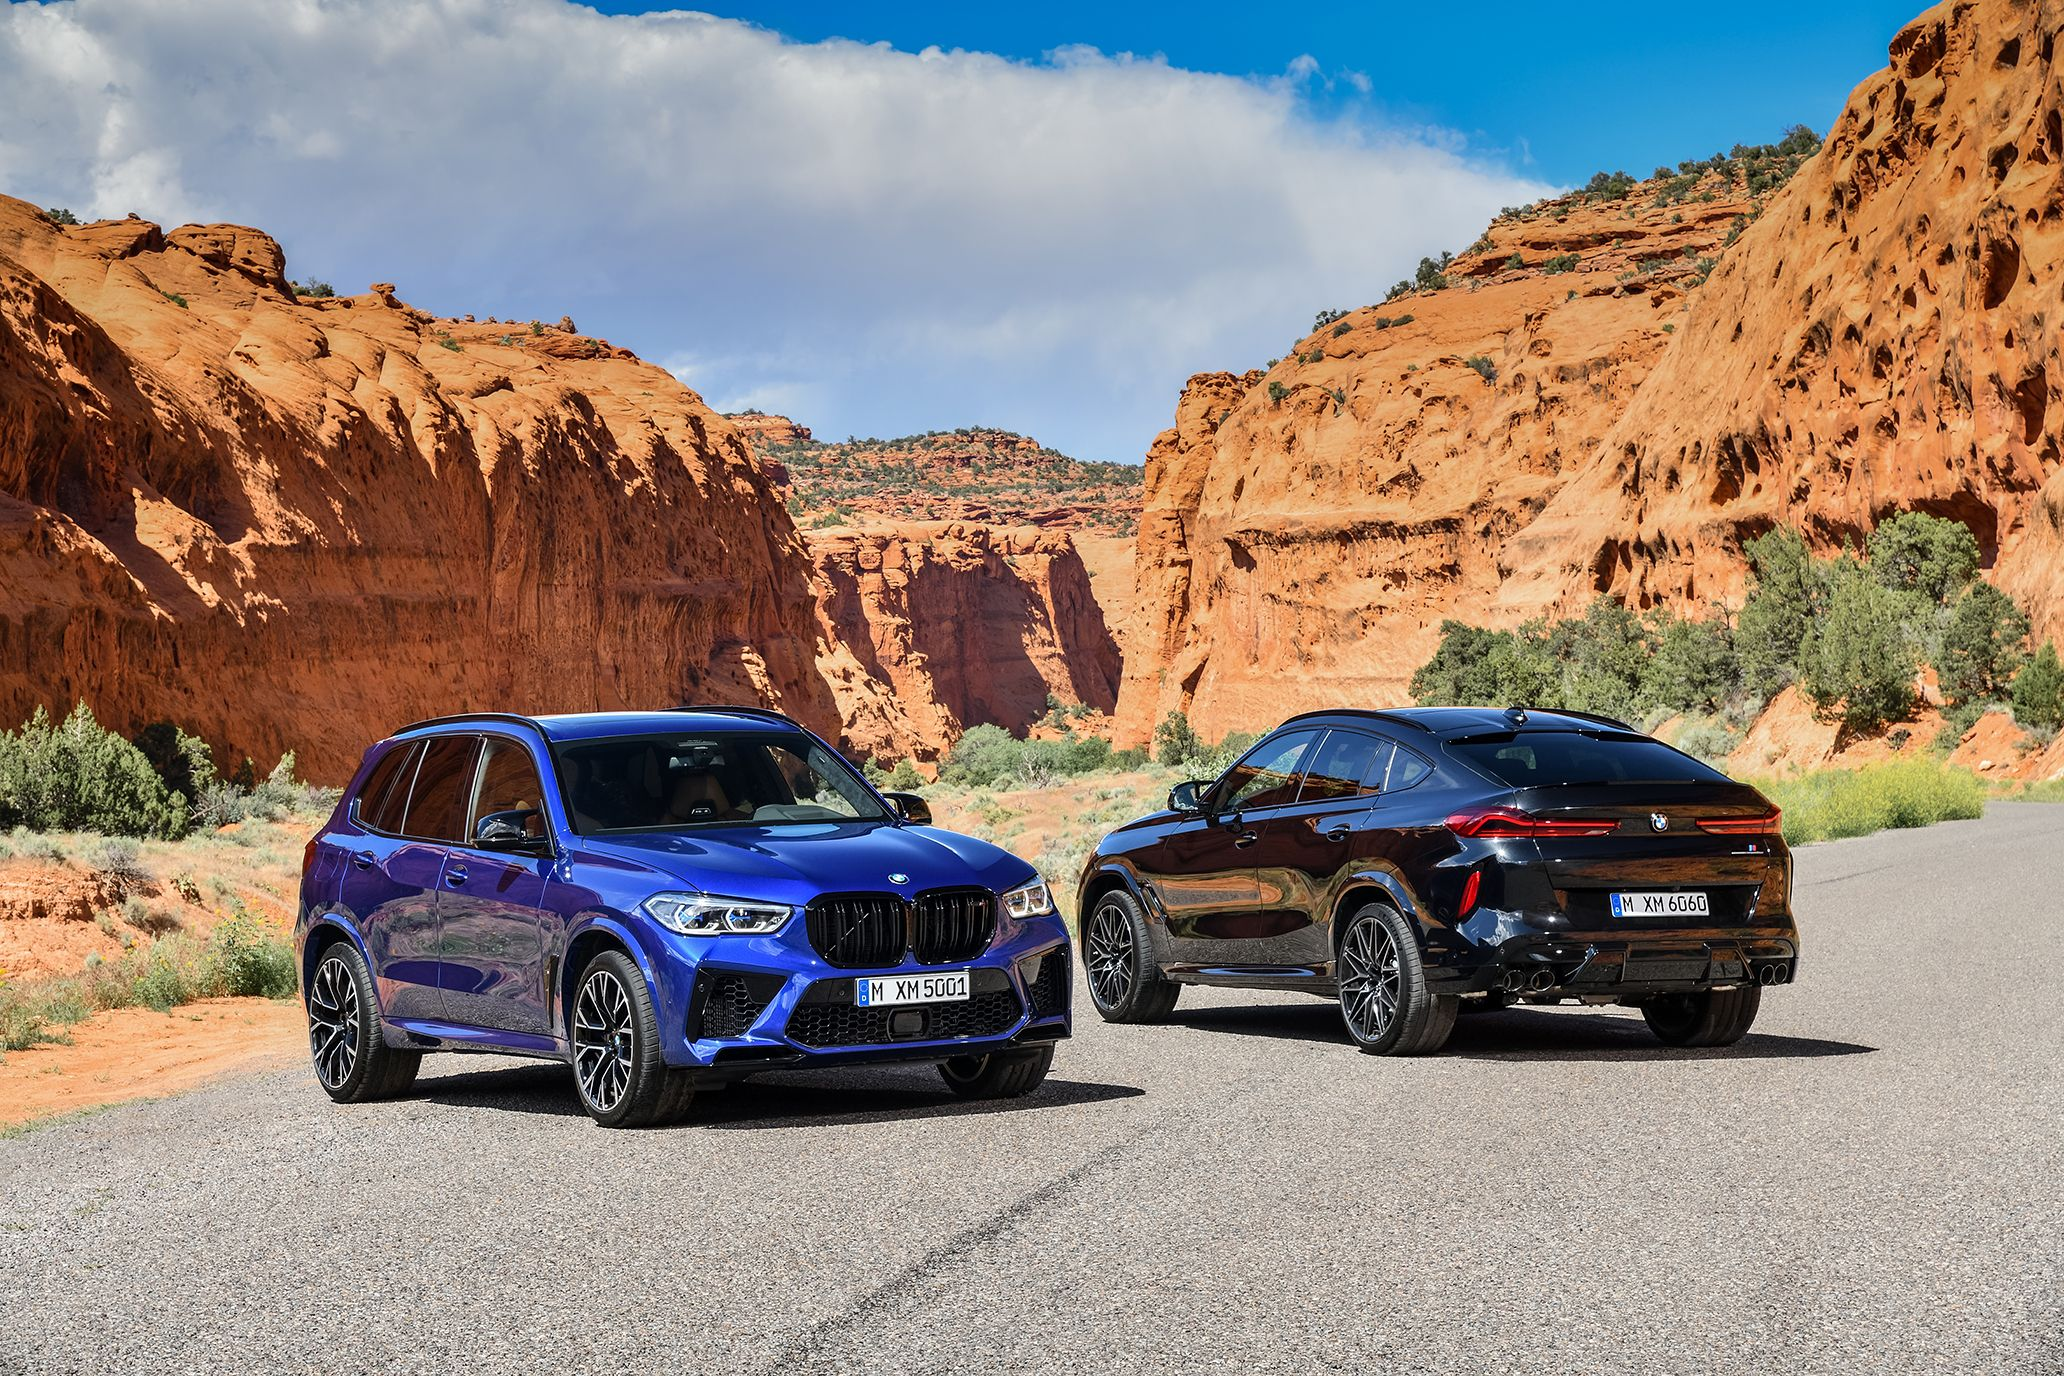 2020 Bmw X5 And X6 M Competition Revealed With 617 Hp